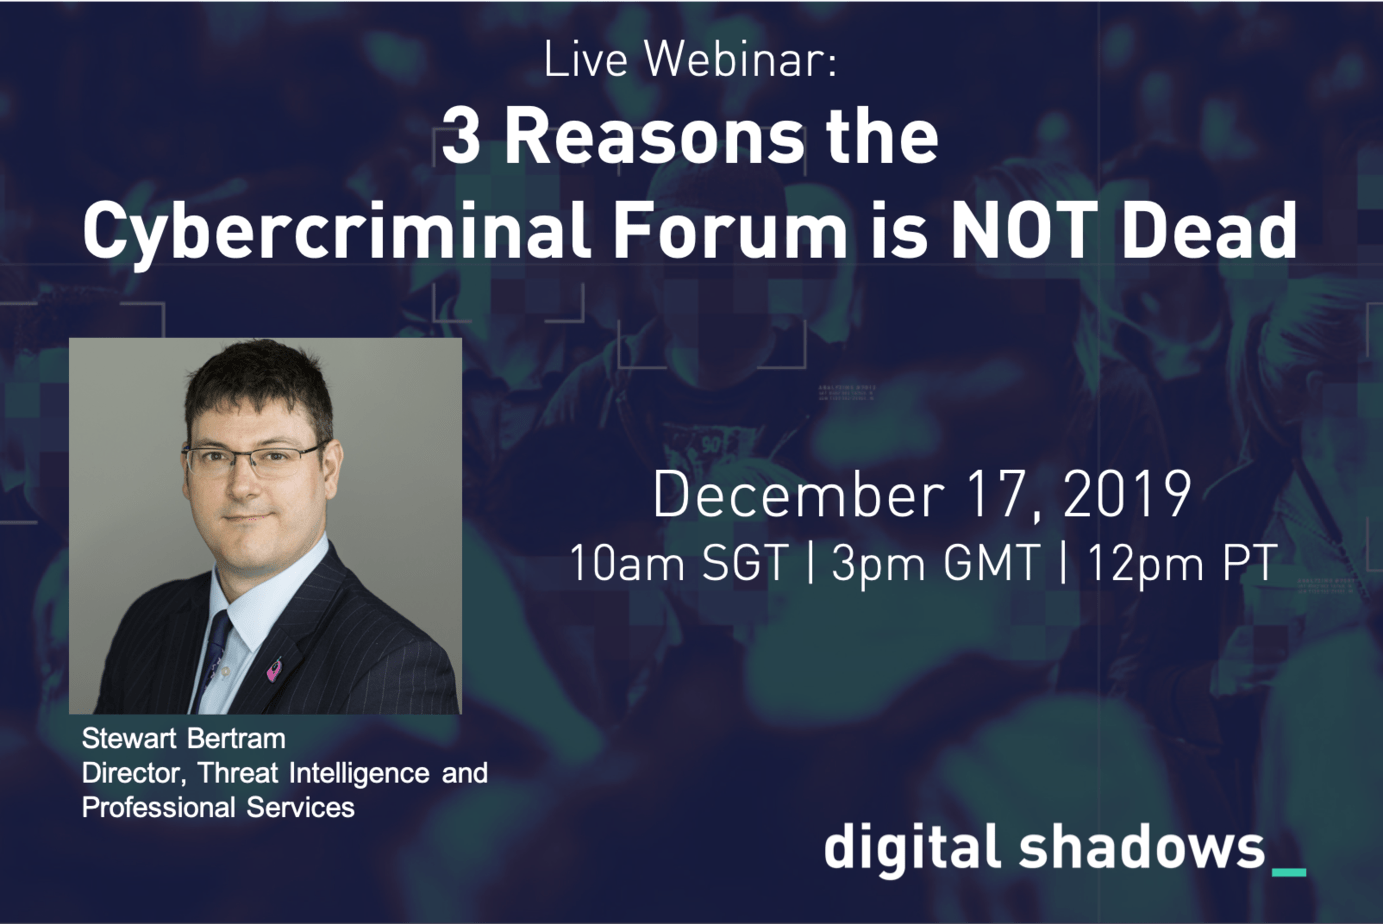 Recorded Webinar: 3 Reasons the Cybercriminal Forum is NOT Dead